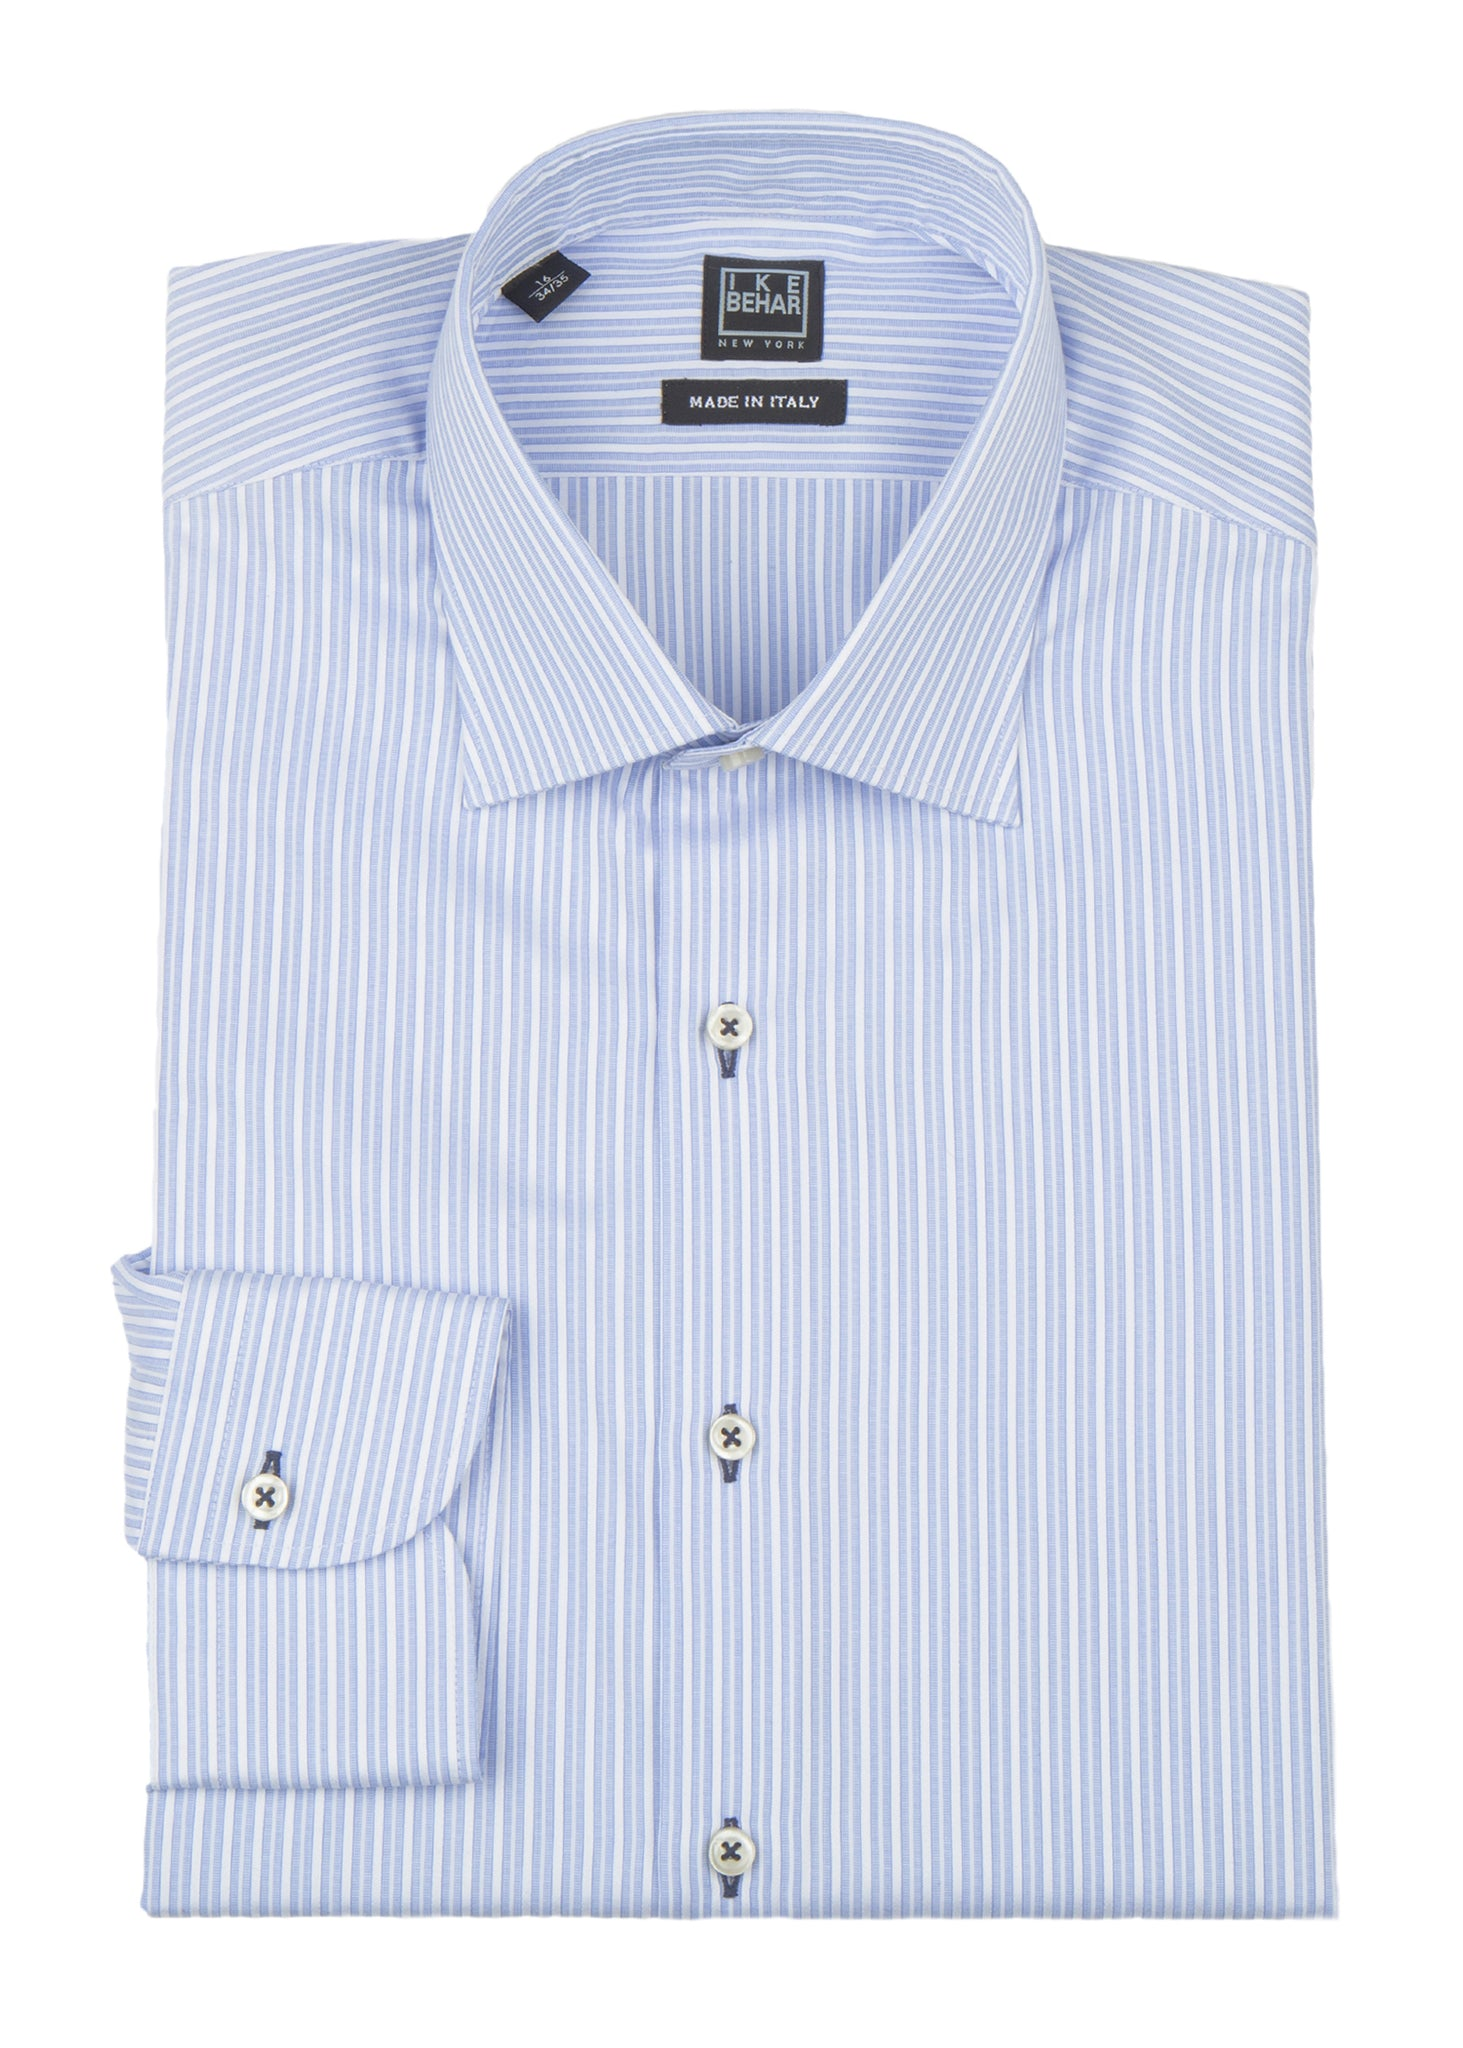 c98d50440fbb4f Blue and White Striped Dress Shirt – Ike Behar